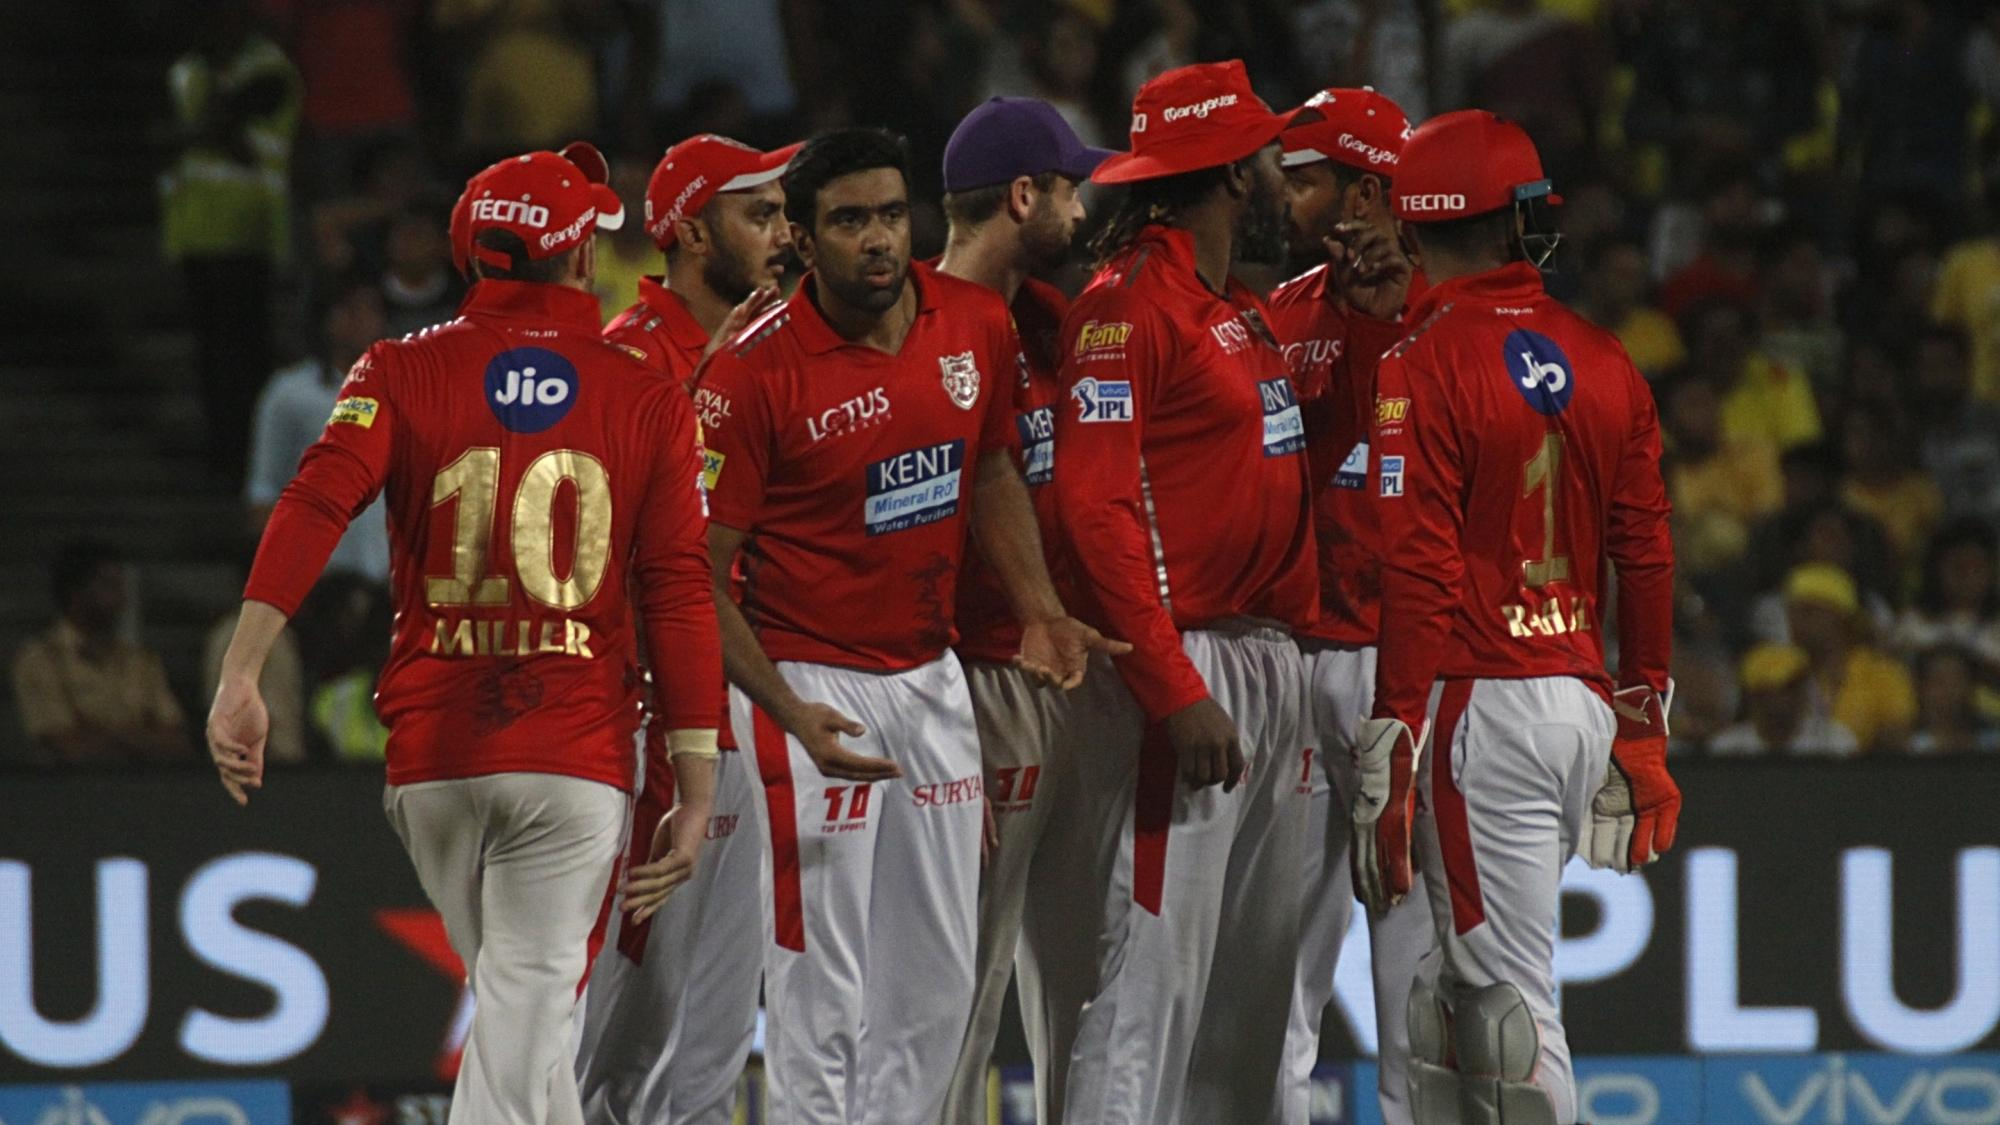 IPL 2018 : Kings XI Punjab (KXIP) - Statistical Review for IPL 11